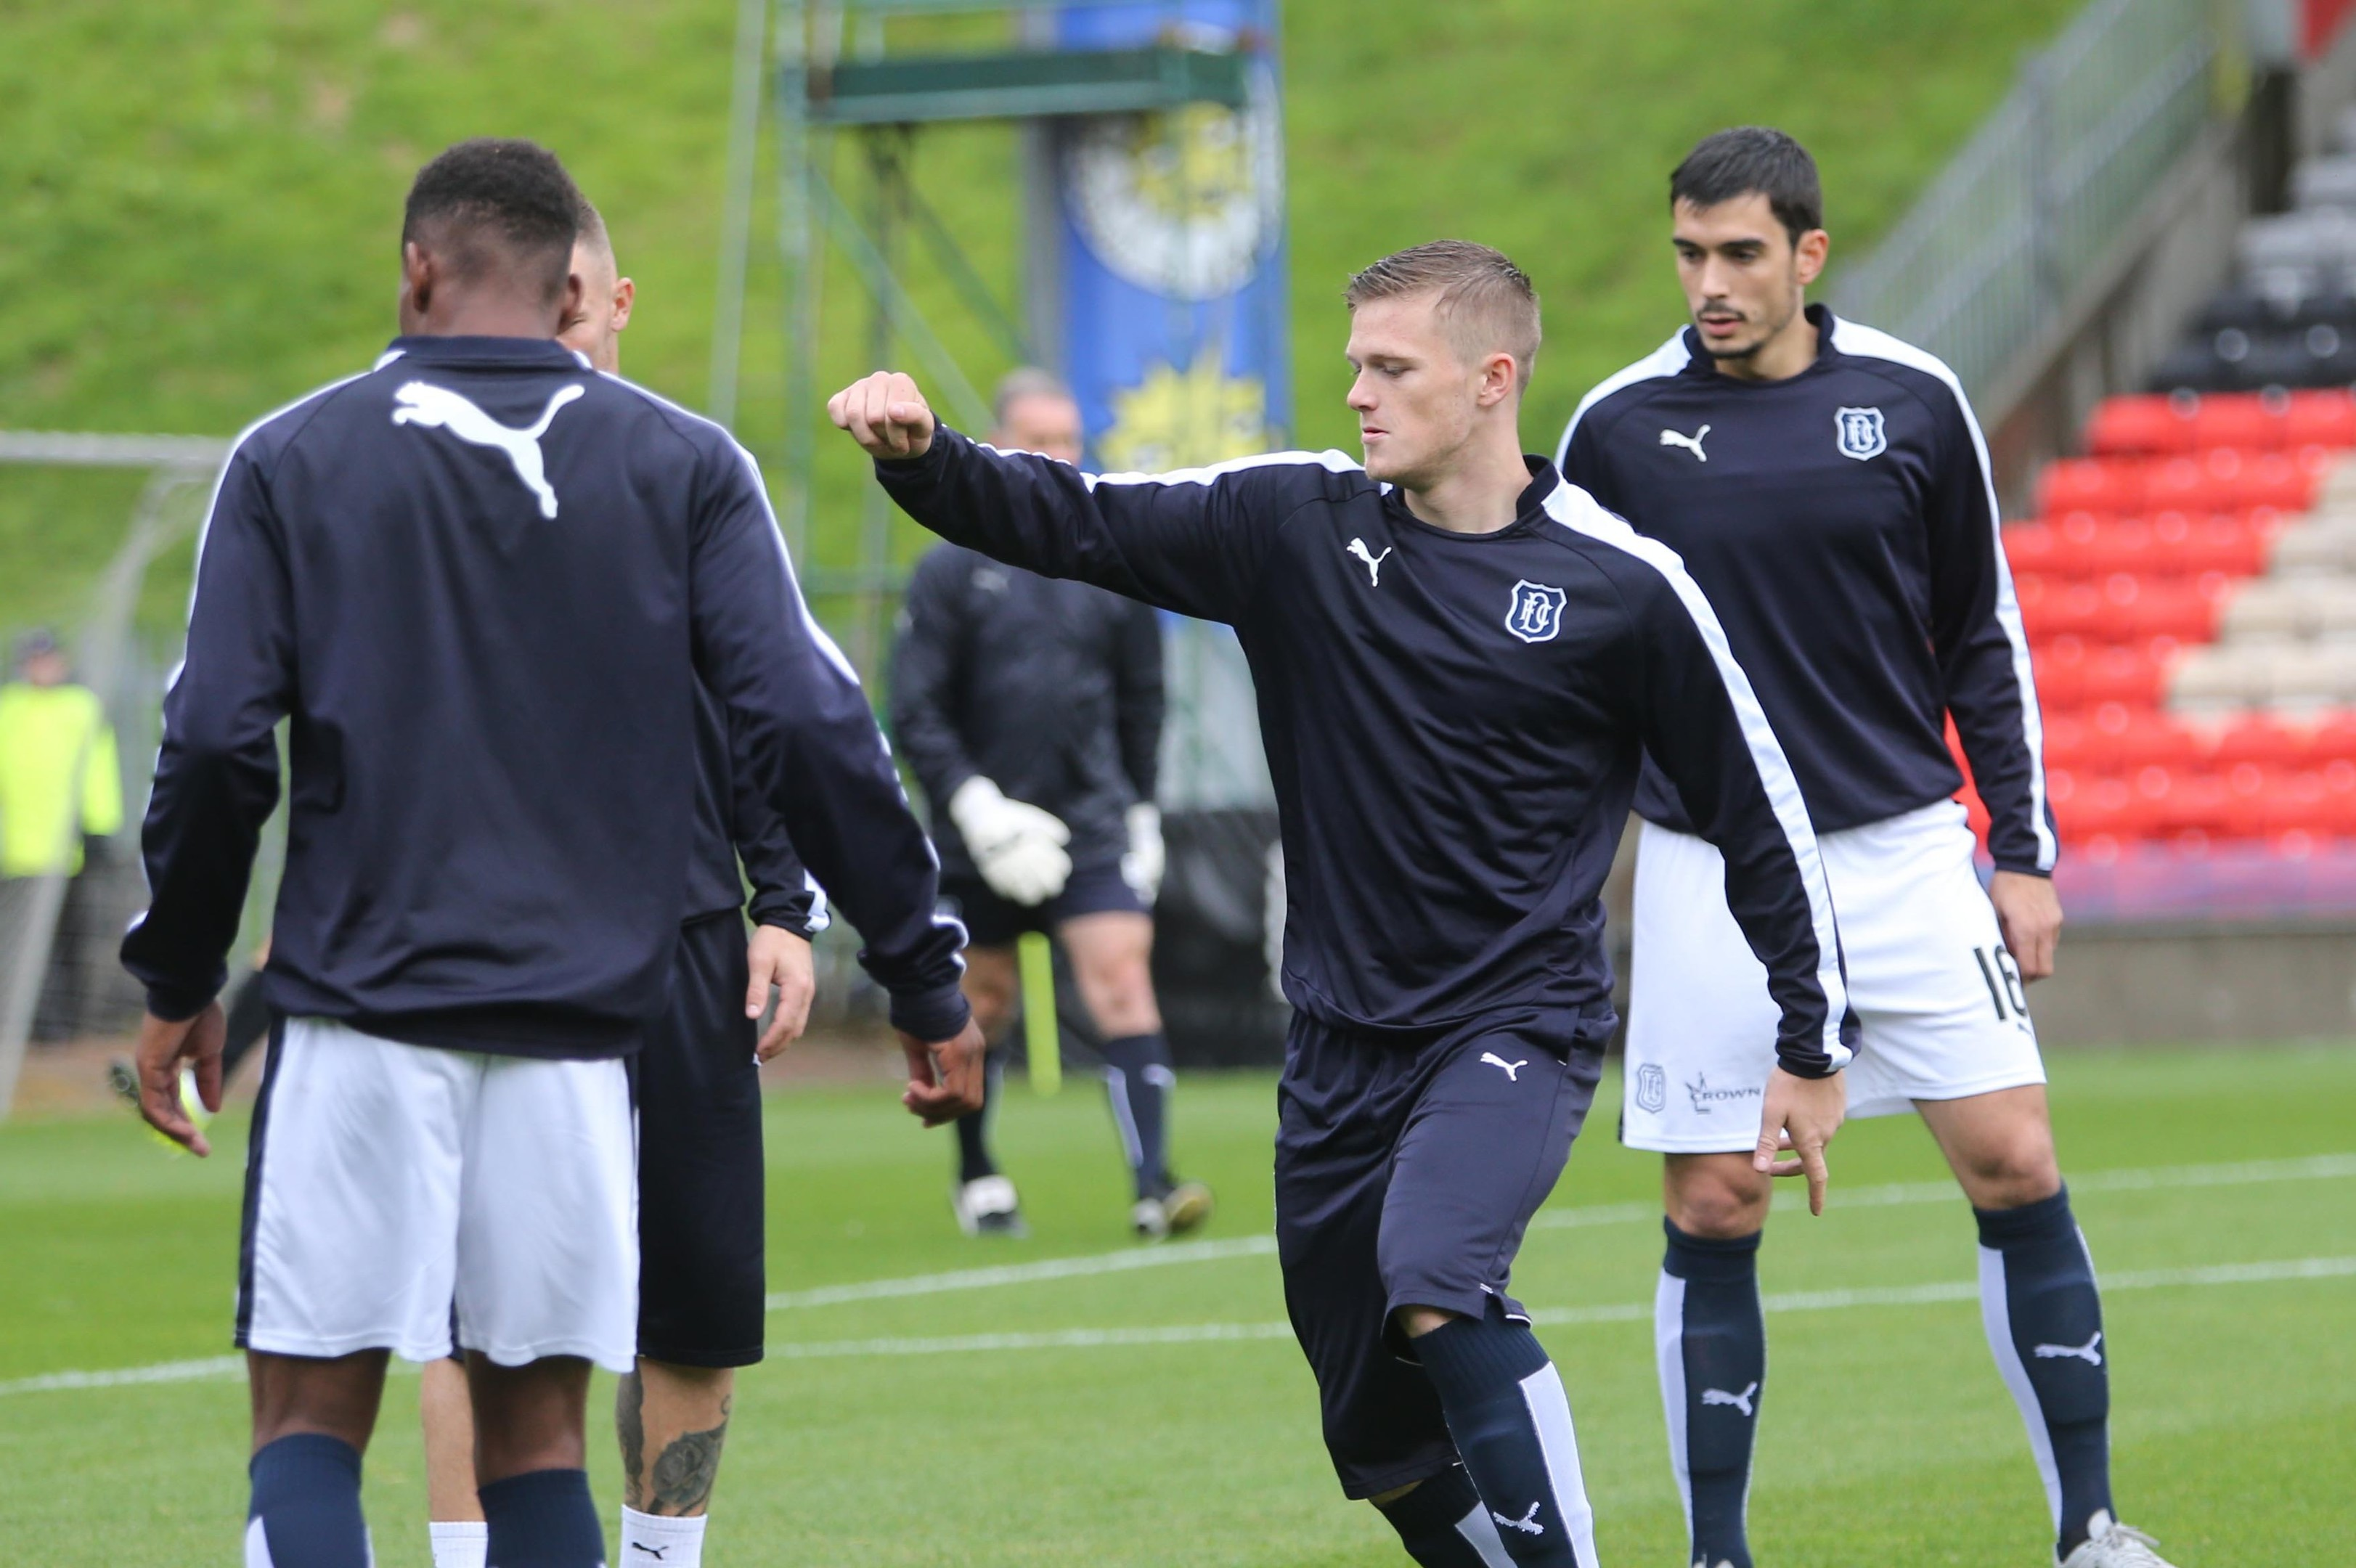 Dundee striker Rhys Healey — seen here warming up with his team-mates at Firhill on Saturday — hopes his time on the bench will be temporary. (Picture by David Young)